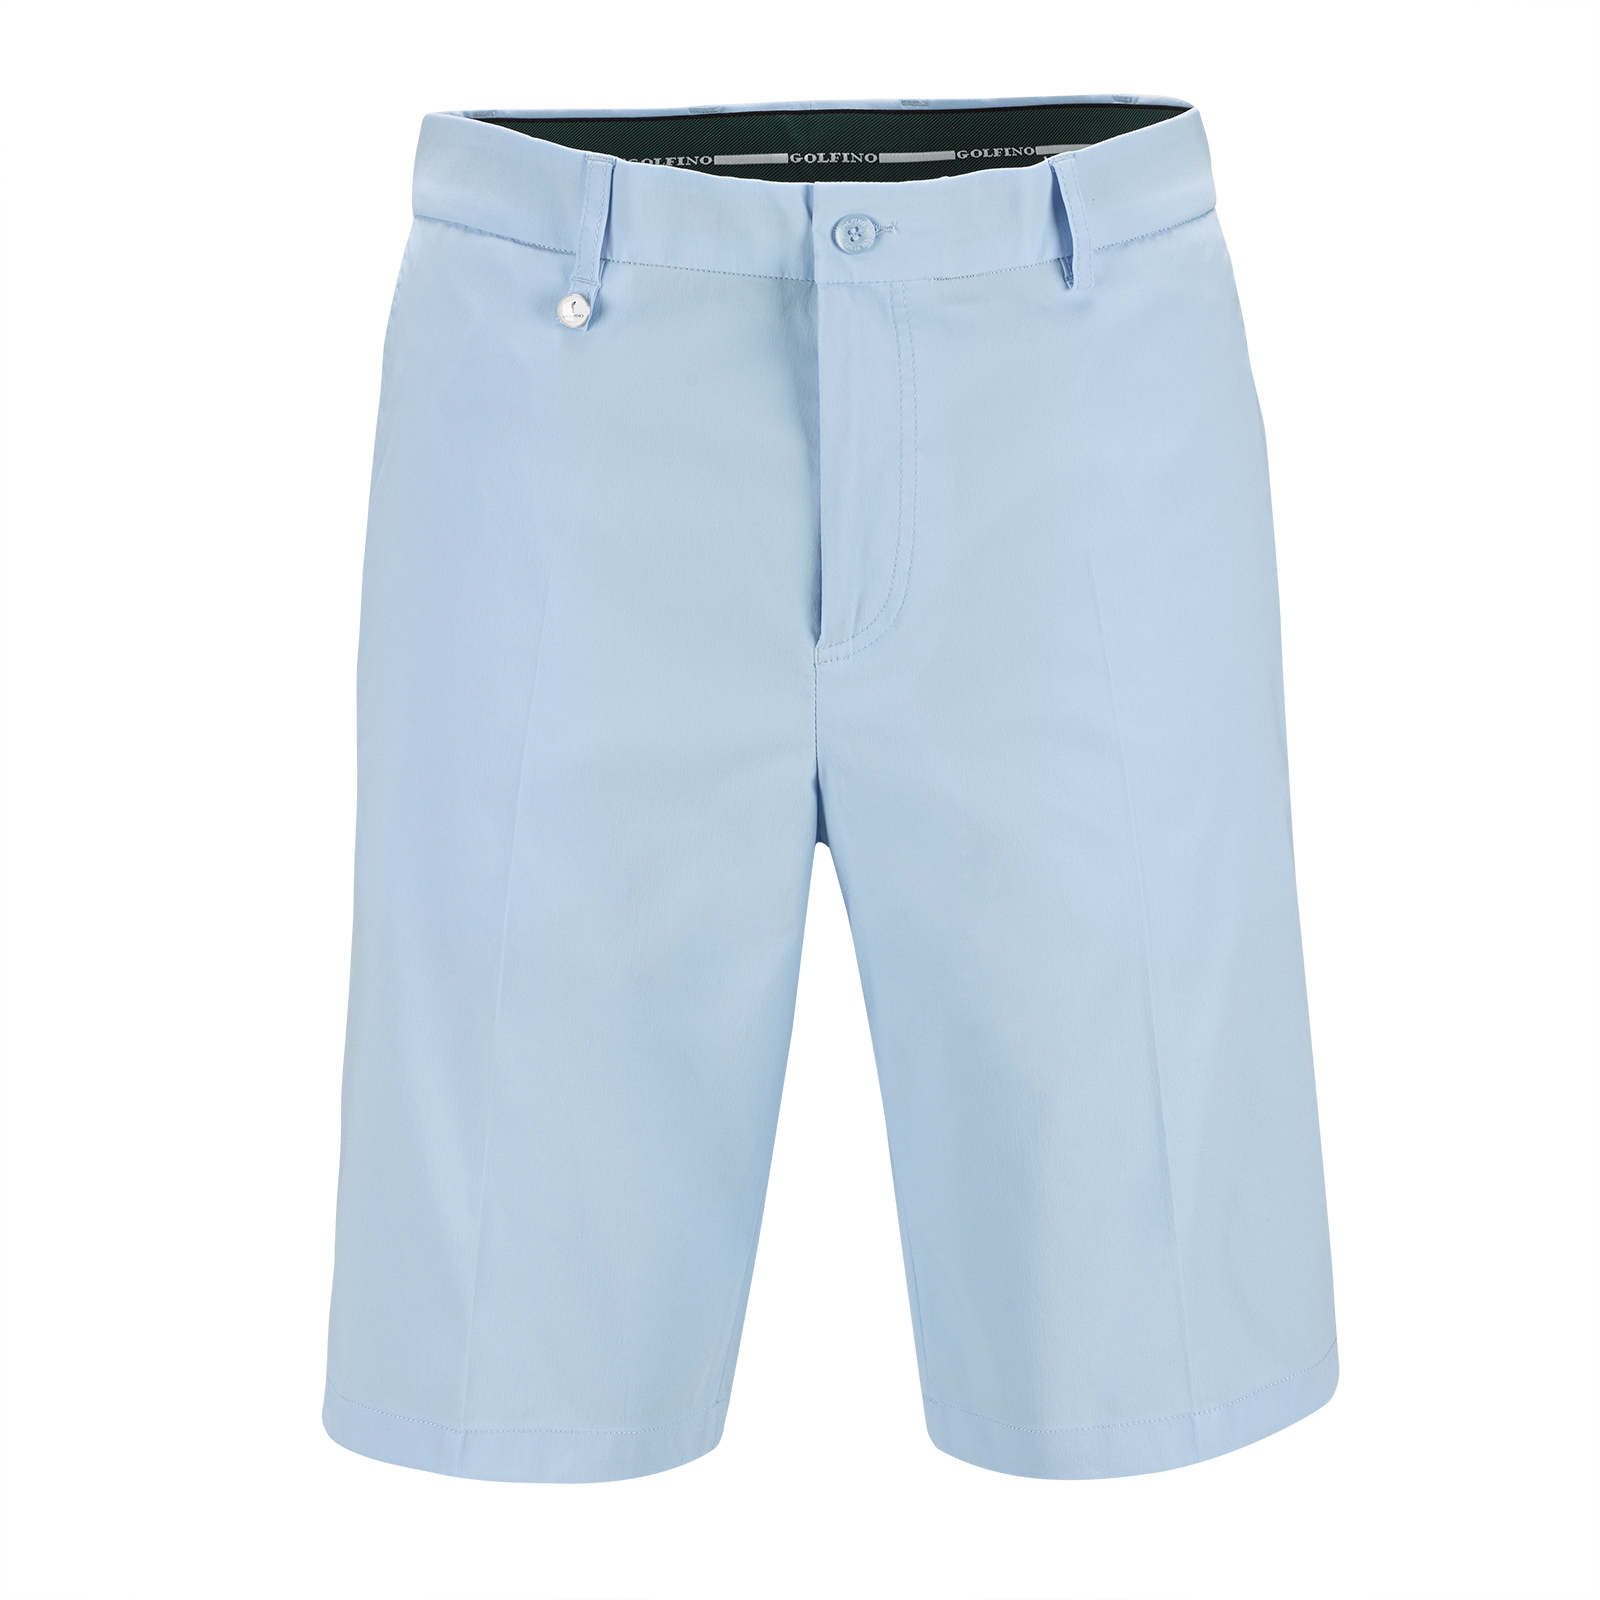 Light Techno Stretch Herren Golf-Bermuda Sun Protection in Comfortable Fit